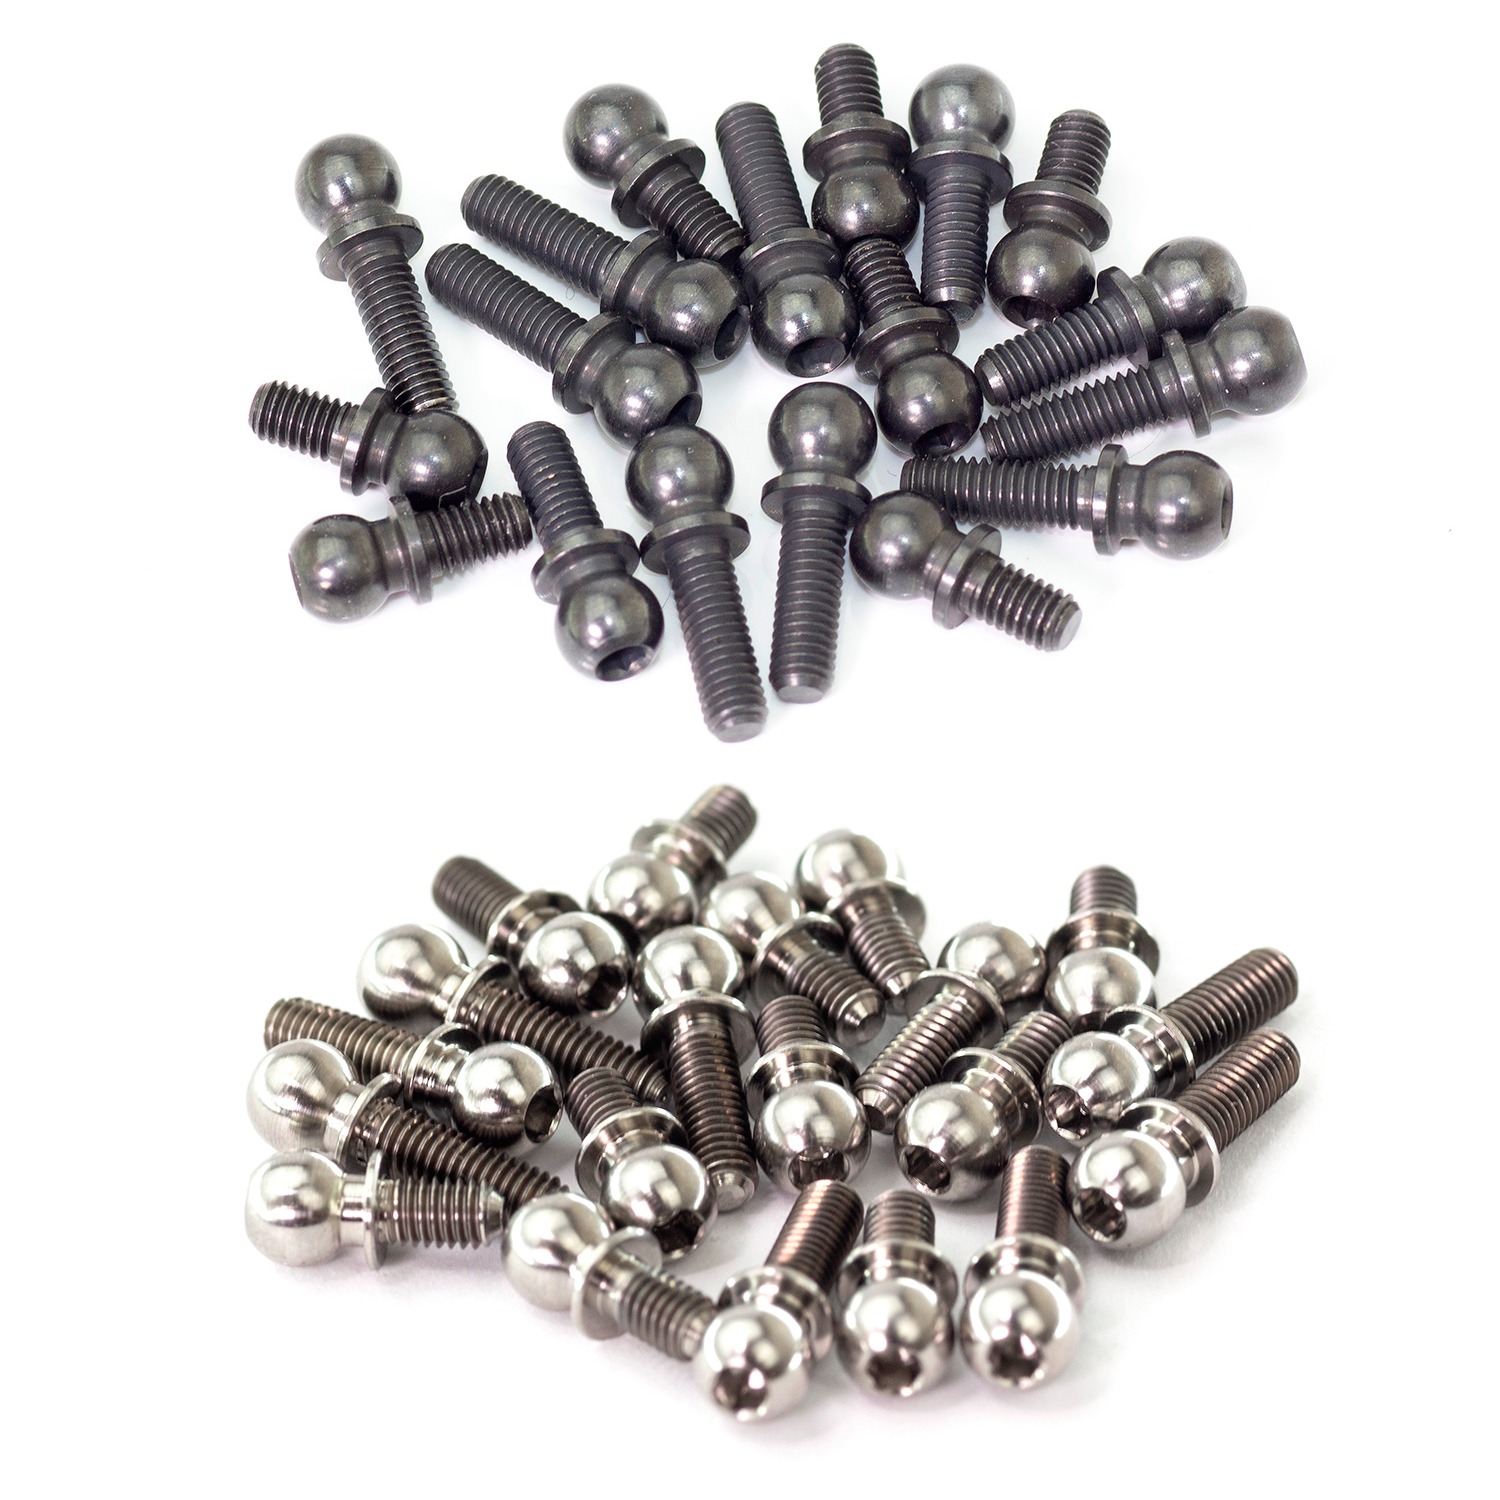 HIGH PRECISION AND HEAVY DUTY STEEL 4.9MM BALL END